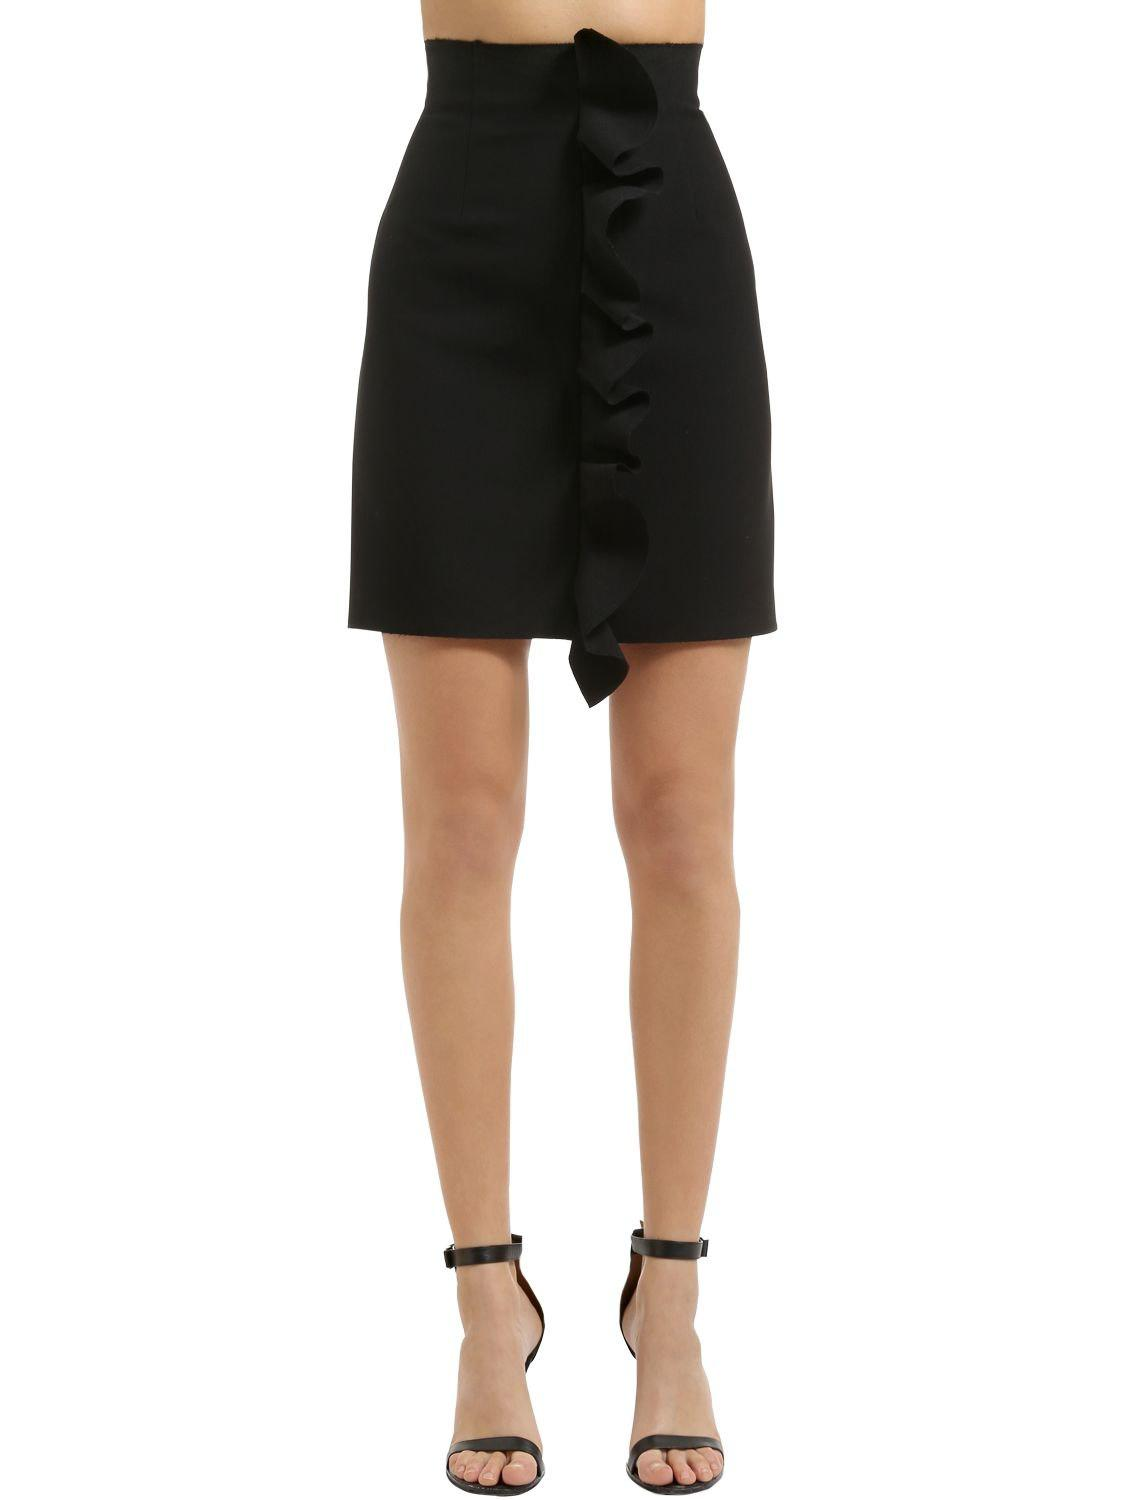 Short skirt with ruffles Msgm Factory Sale Visit New For Sale Free Shipping Supply iUhhh